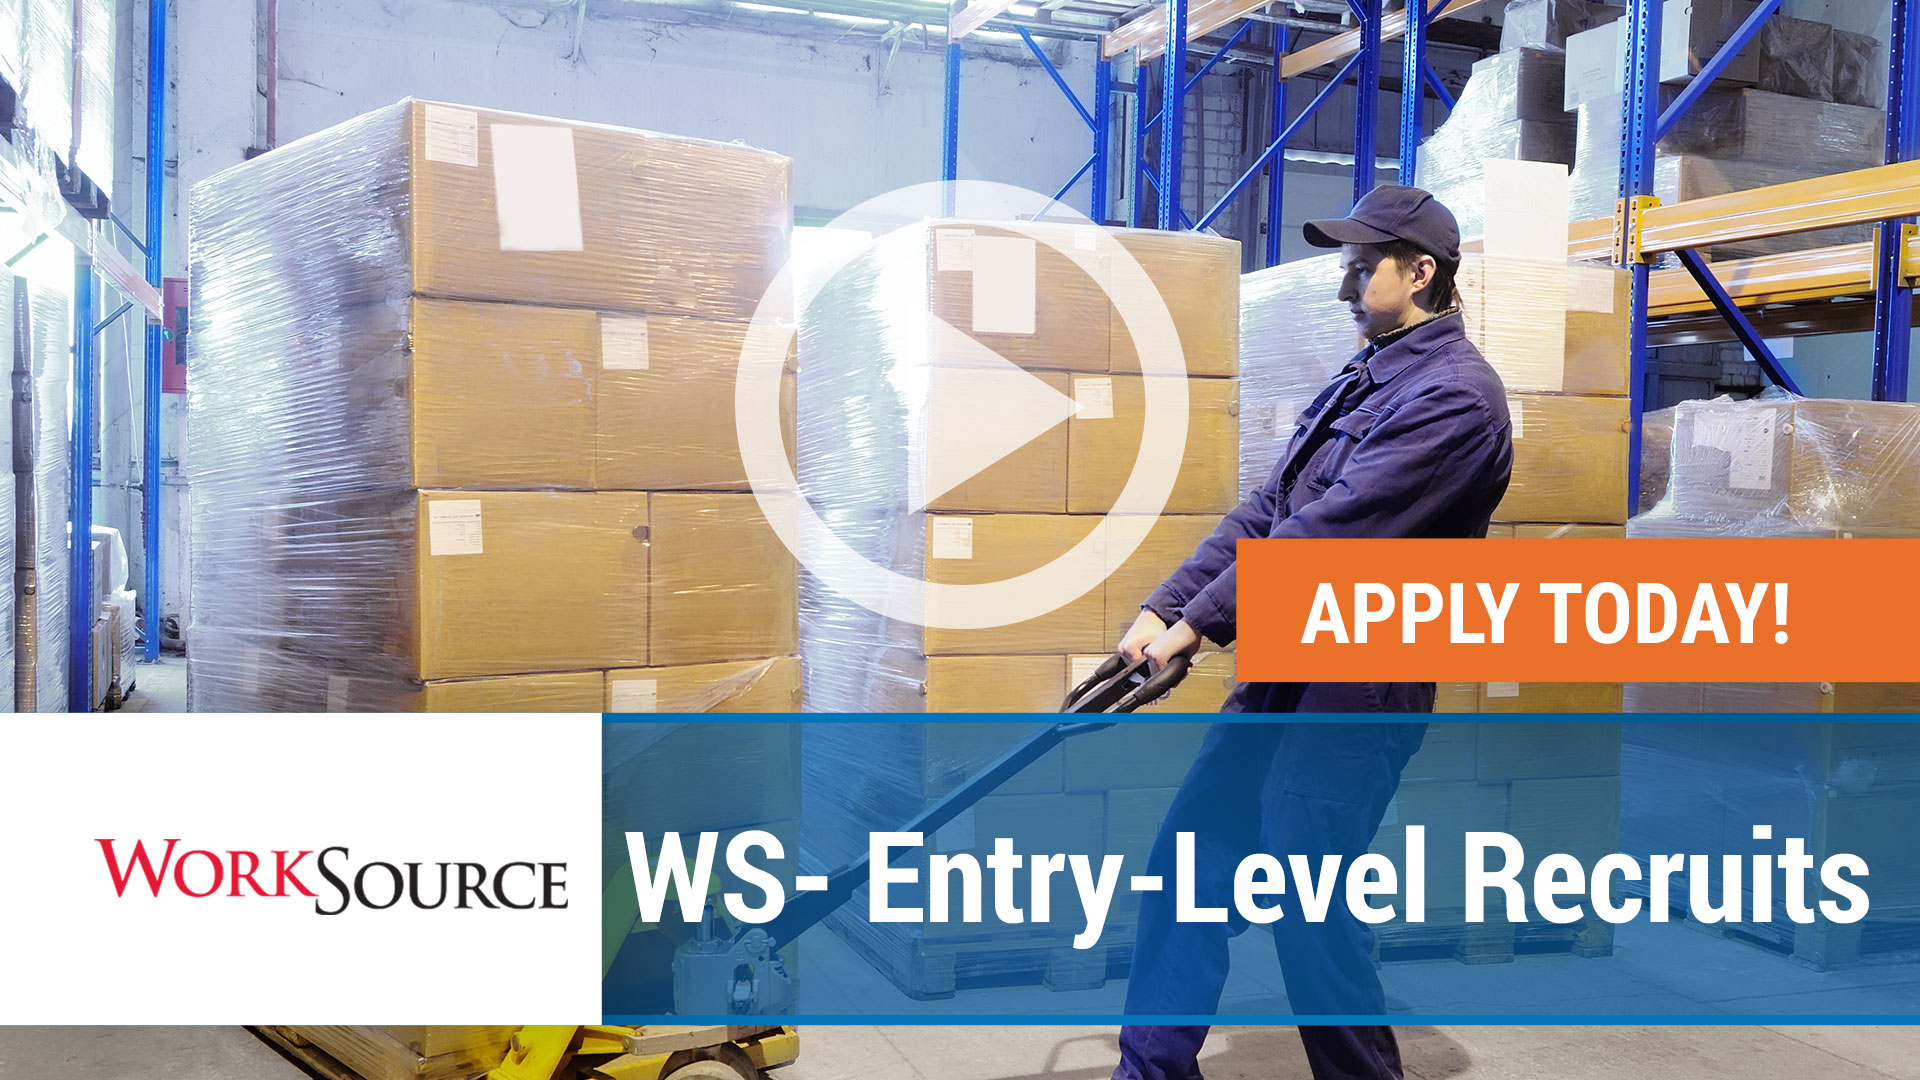 Watch our careers video for available job opening WS Entry-Level Recruits for WorkSource in Springdale,  AR